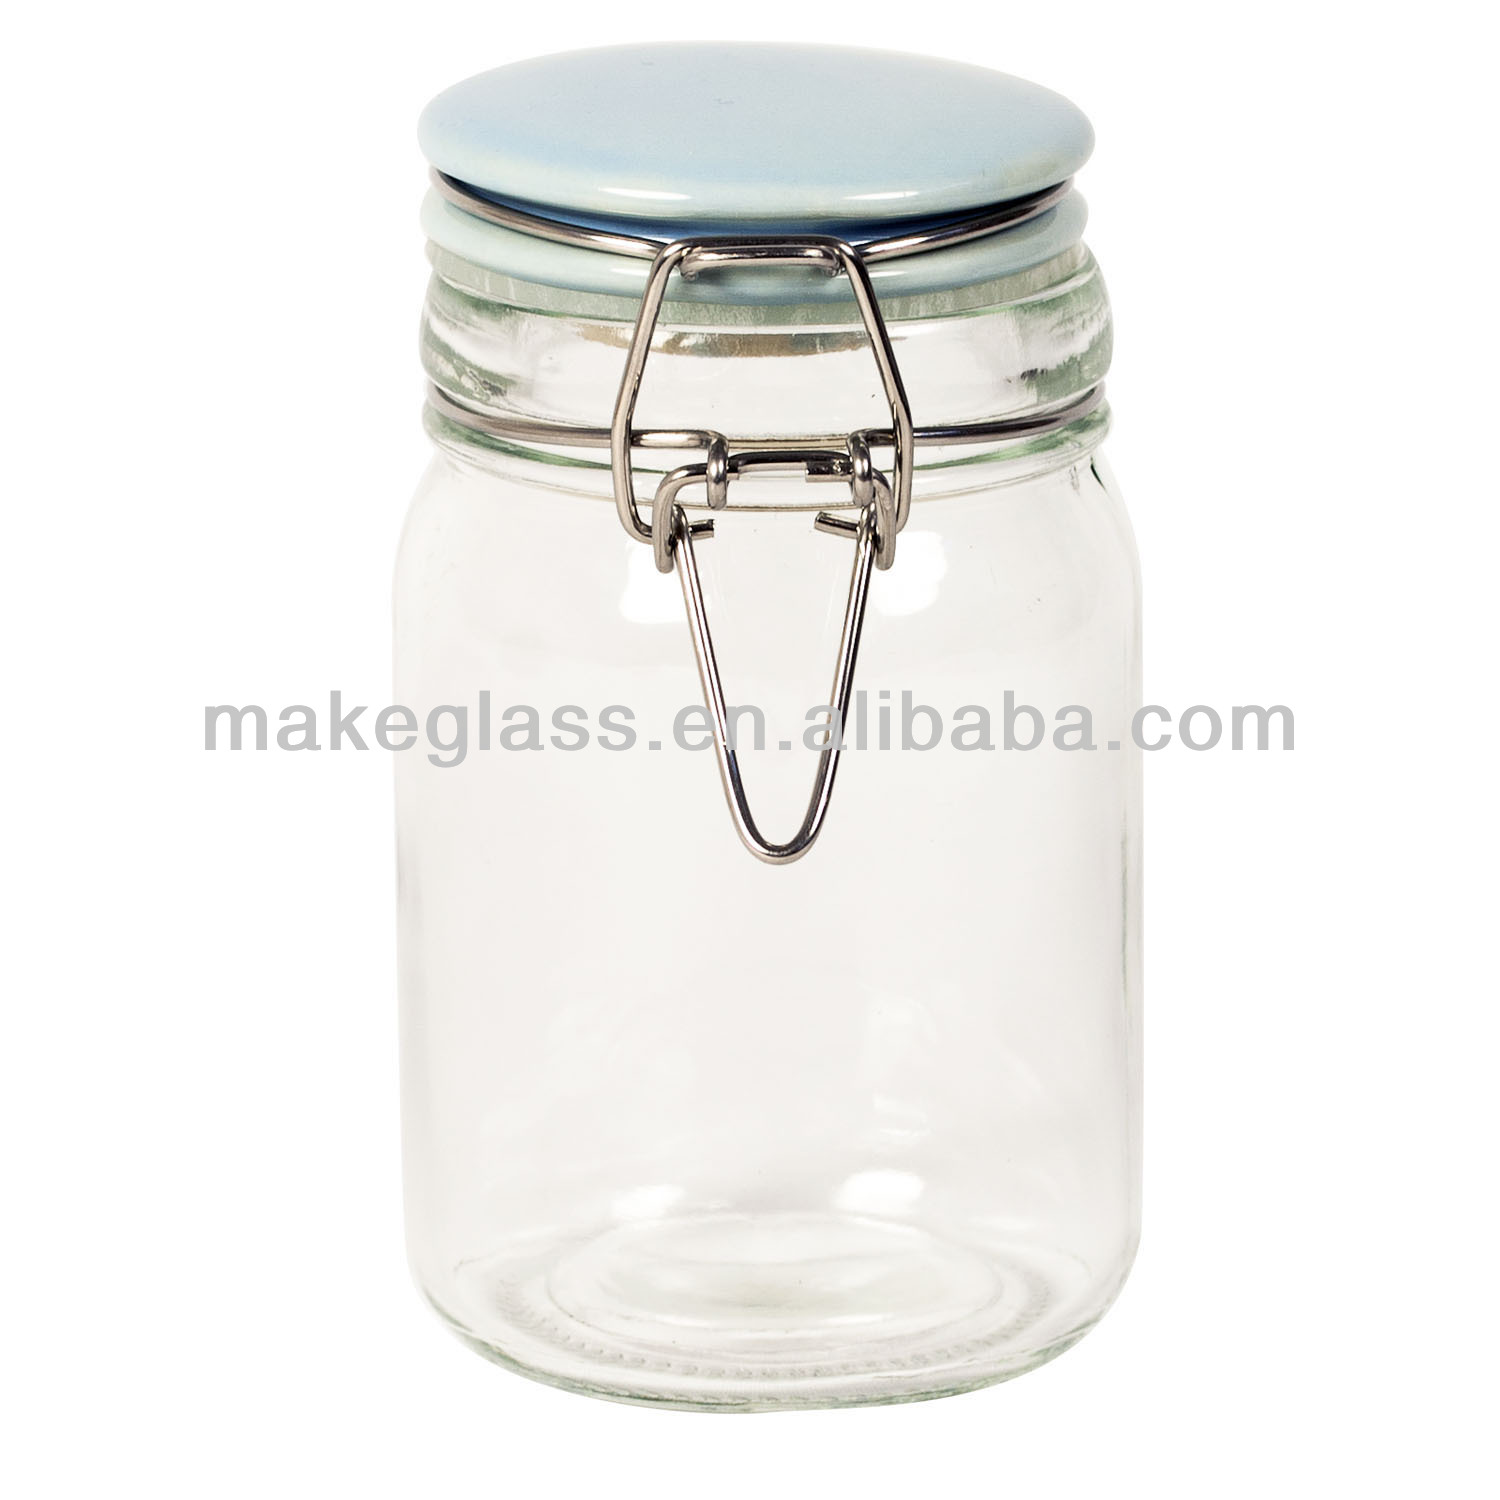 Glware Air Small Gl Jar